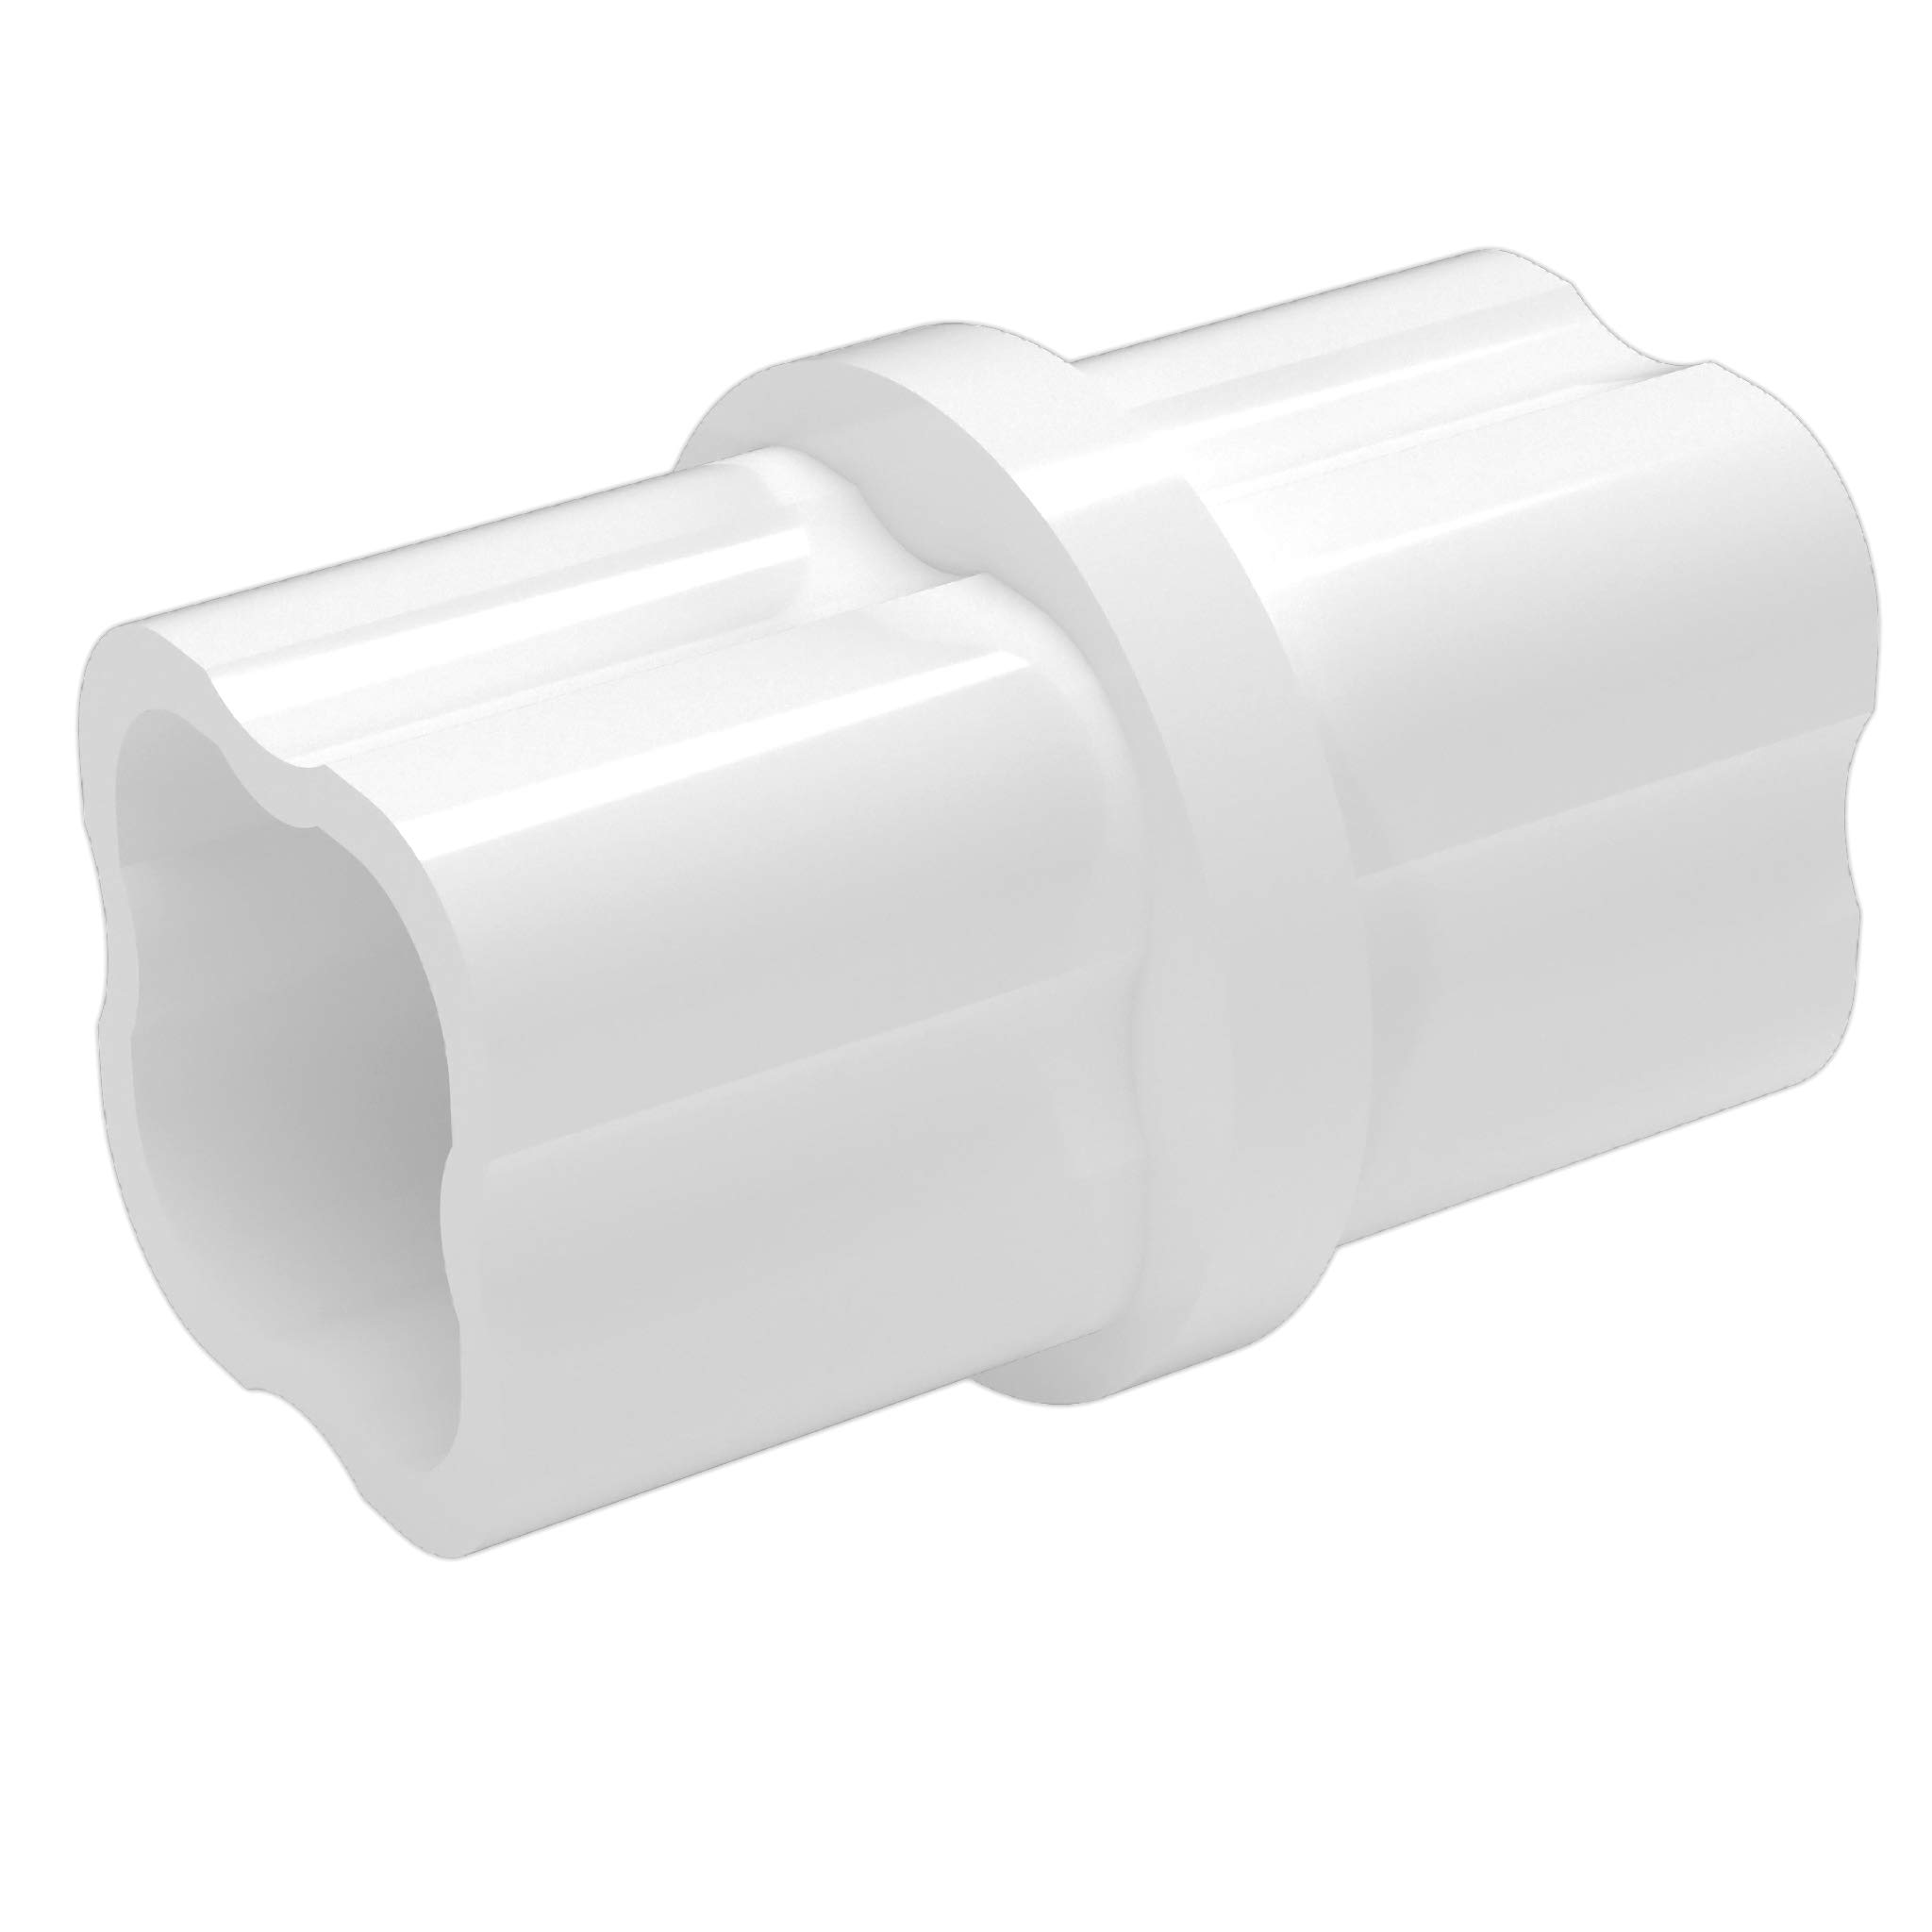 FORMUFIT F114ICO-WH-10 Internal PVC Coupling, Furniture Grade, 1-1/4'' Size, White (Pack of 10)